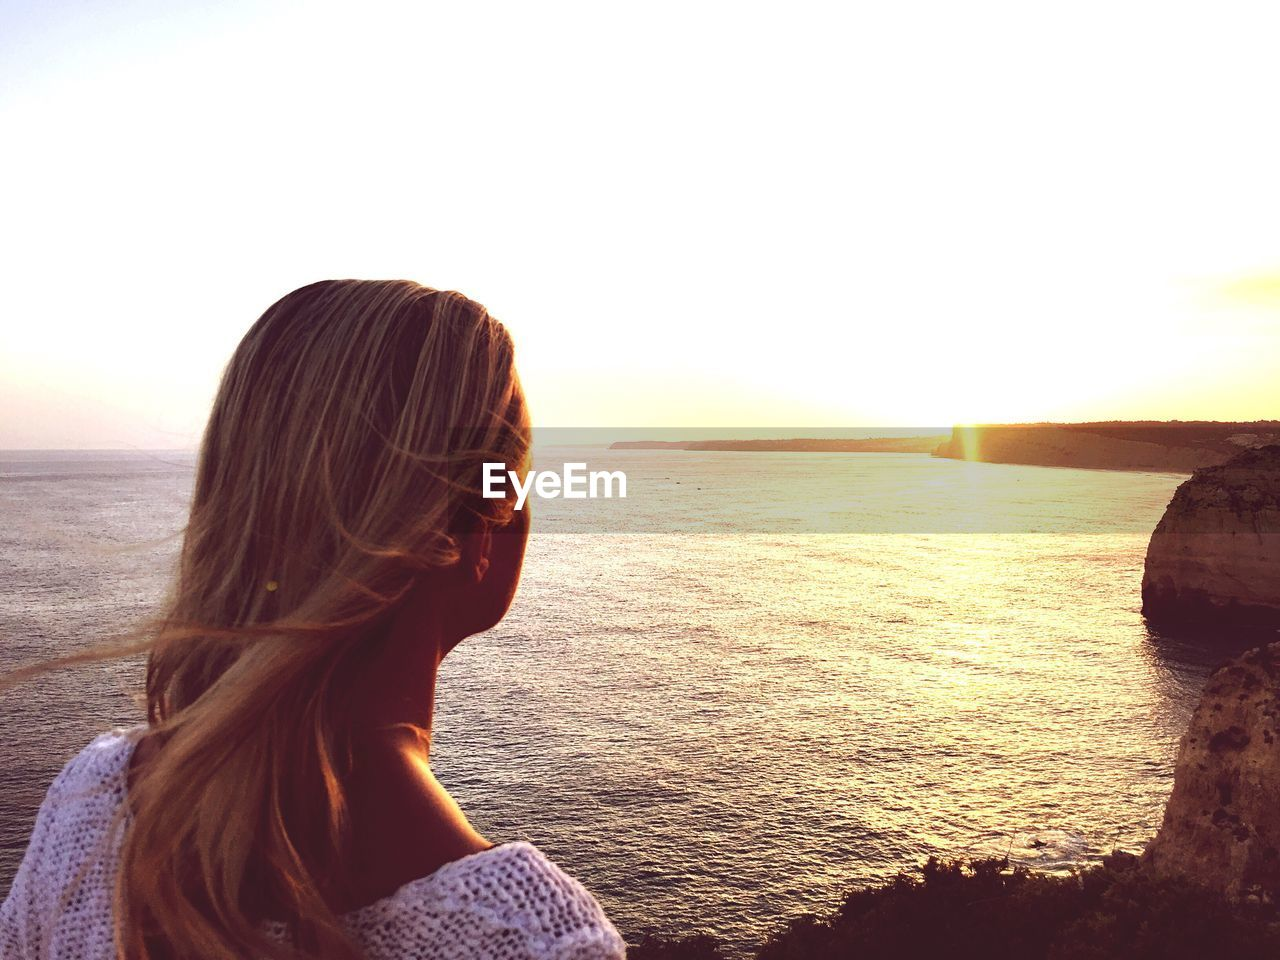 sea, sunset, one person, rear view, real people, water, leisure activity, nature, standing, horizon over water, scenics, long hair, sunlight, lifestyles, tranquil scene, sun, beach, women, tranquility, clear sky, beauty in nature, outdoors, wave, young adult, young women, sky, day, adult, people